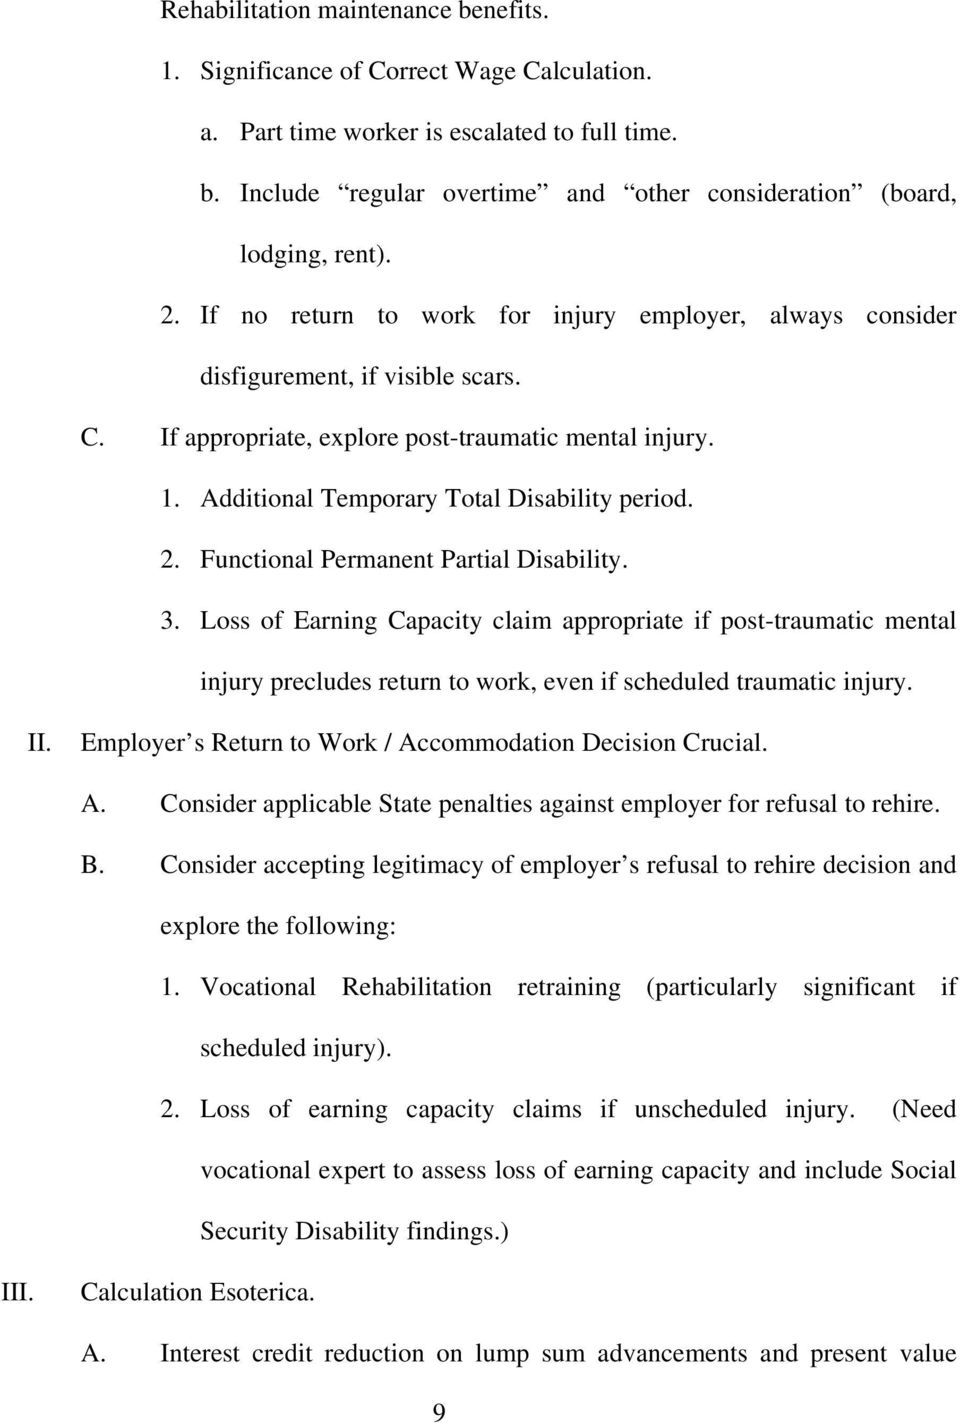 2. Functional Permanent Partial Disability. 3. Loss of Earning Capacity claim appropriate if post-traumatic mental injury precludes return to work, even if scheduled traumatic injury. II.